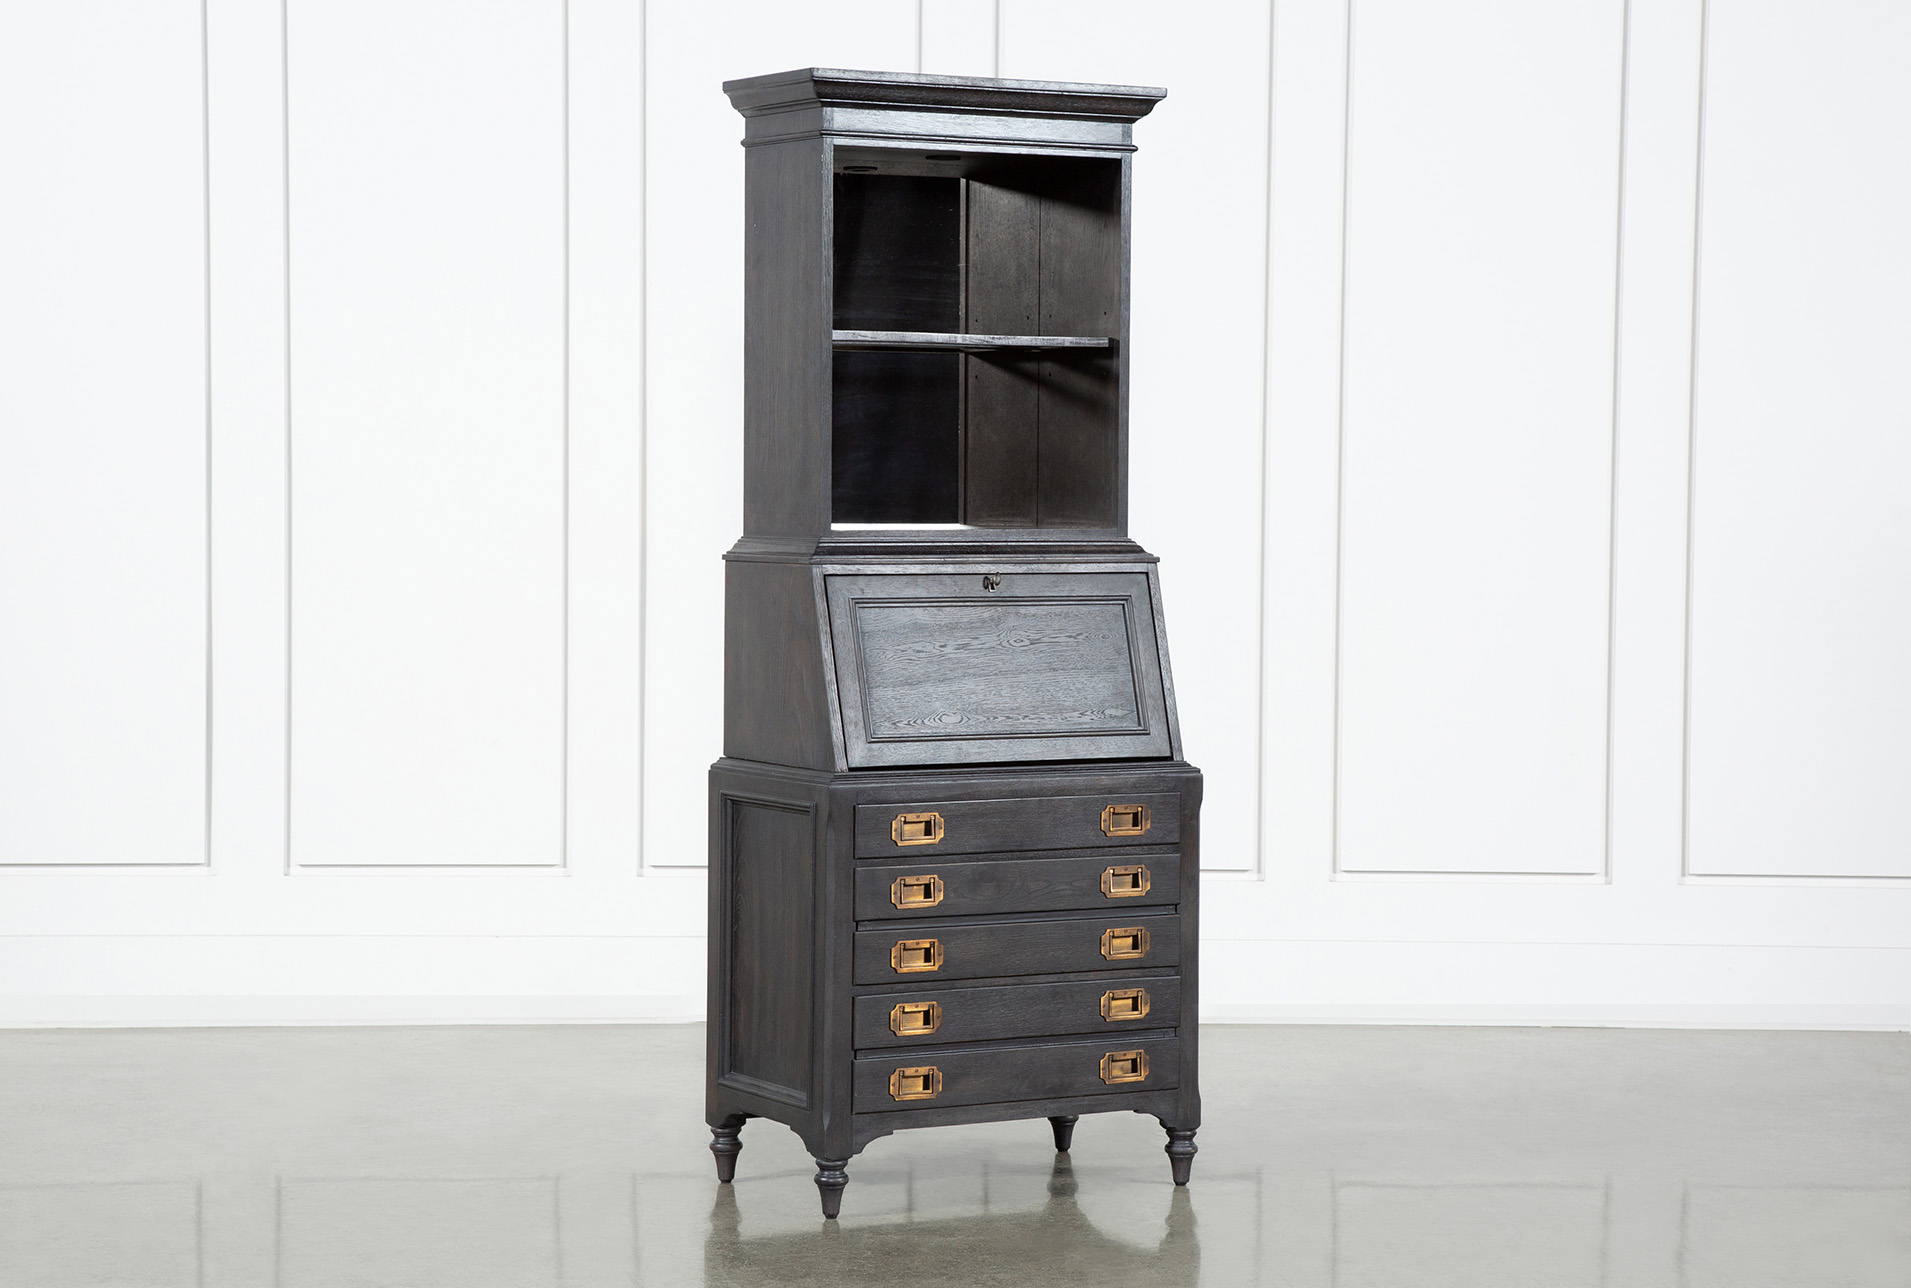 Galerie Secretary Desk By Nate Berkus And Jeremiah Brent (Qty: 1) Has Been  Successfully Added To Your Cart.